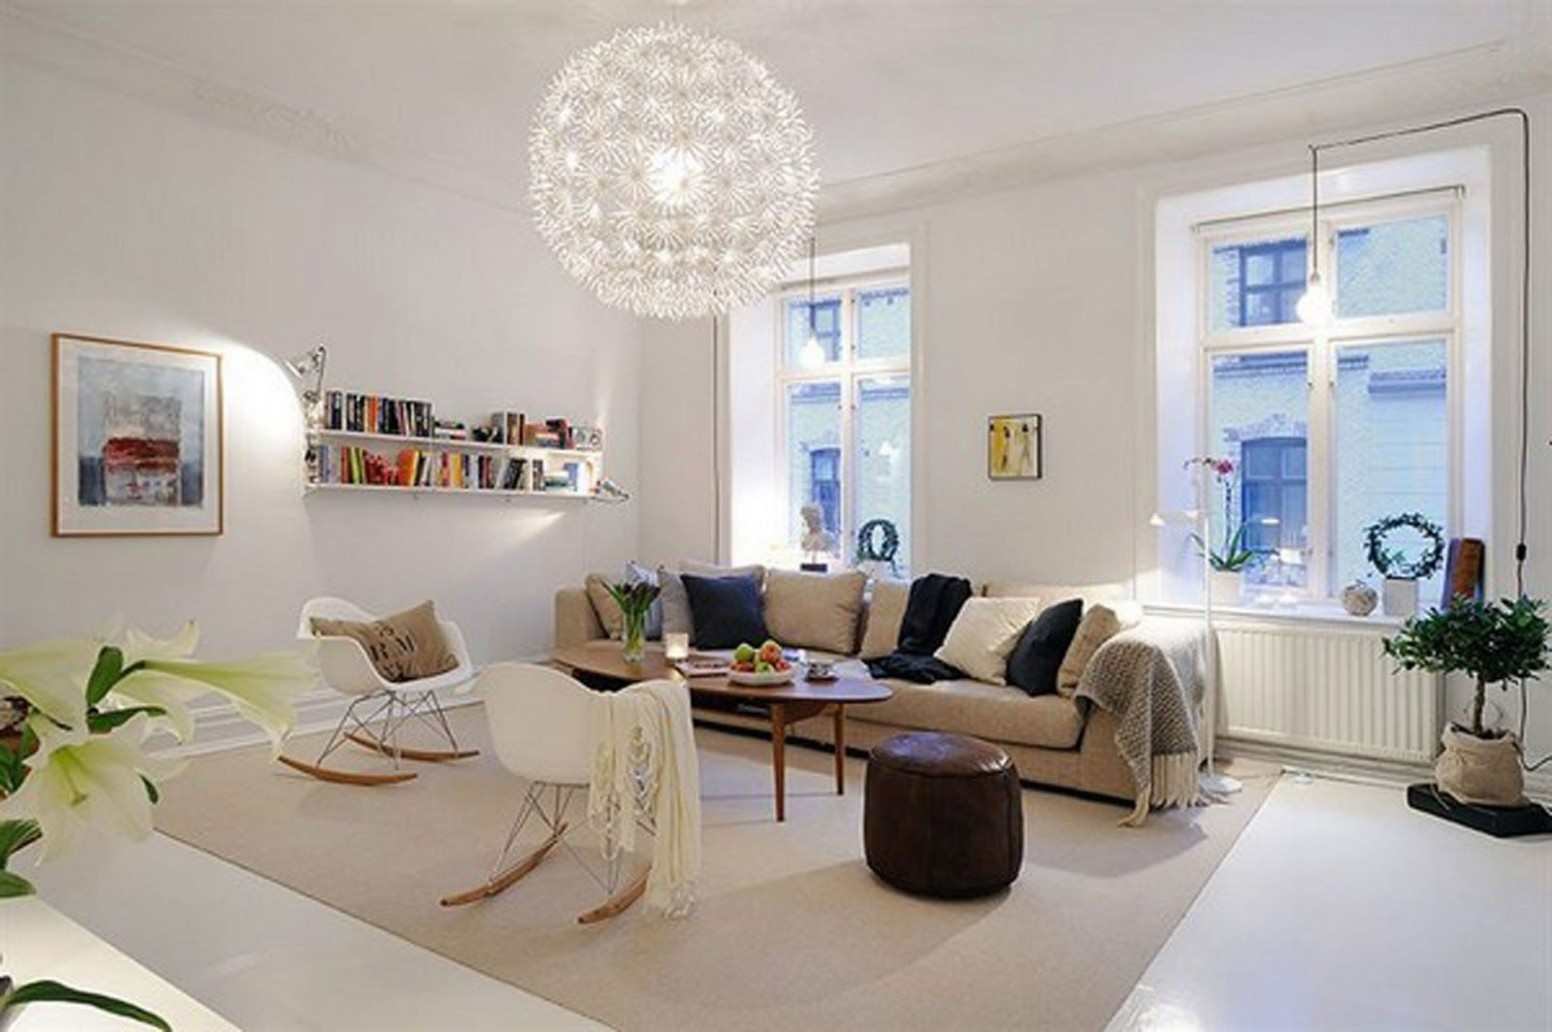 Decorate one bedroom apartment decorate apartments one bedroom  - One Bedroom Apartment Decorating Ideas With Photos